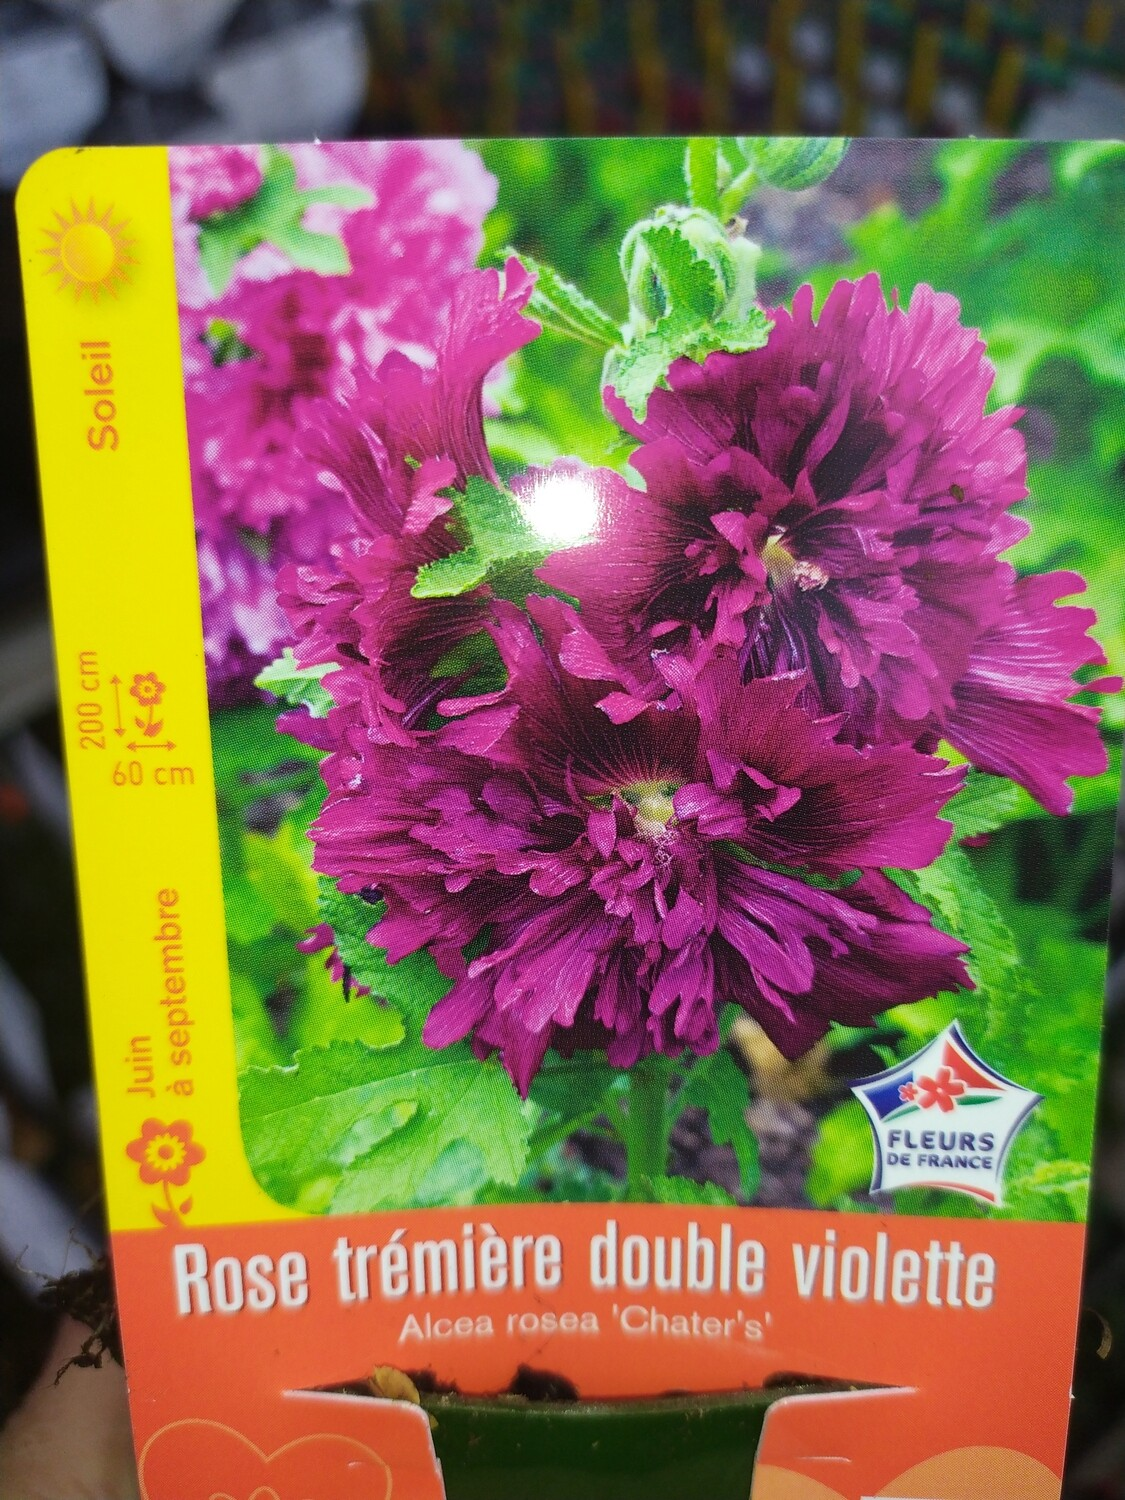 ROSE TREMIERE DOUBLE VIOLETTE